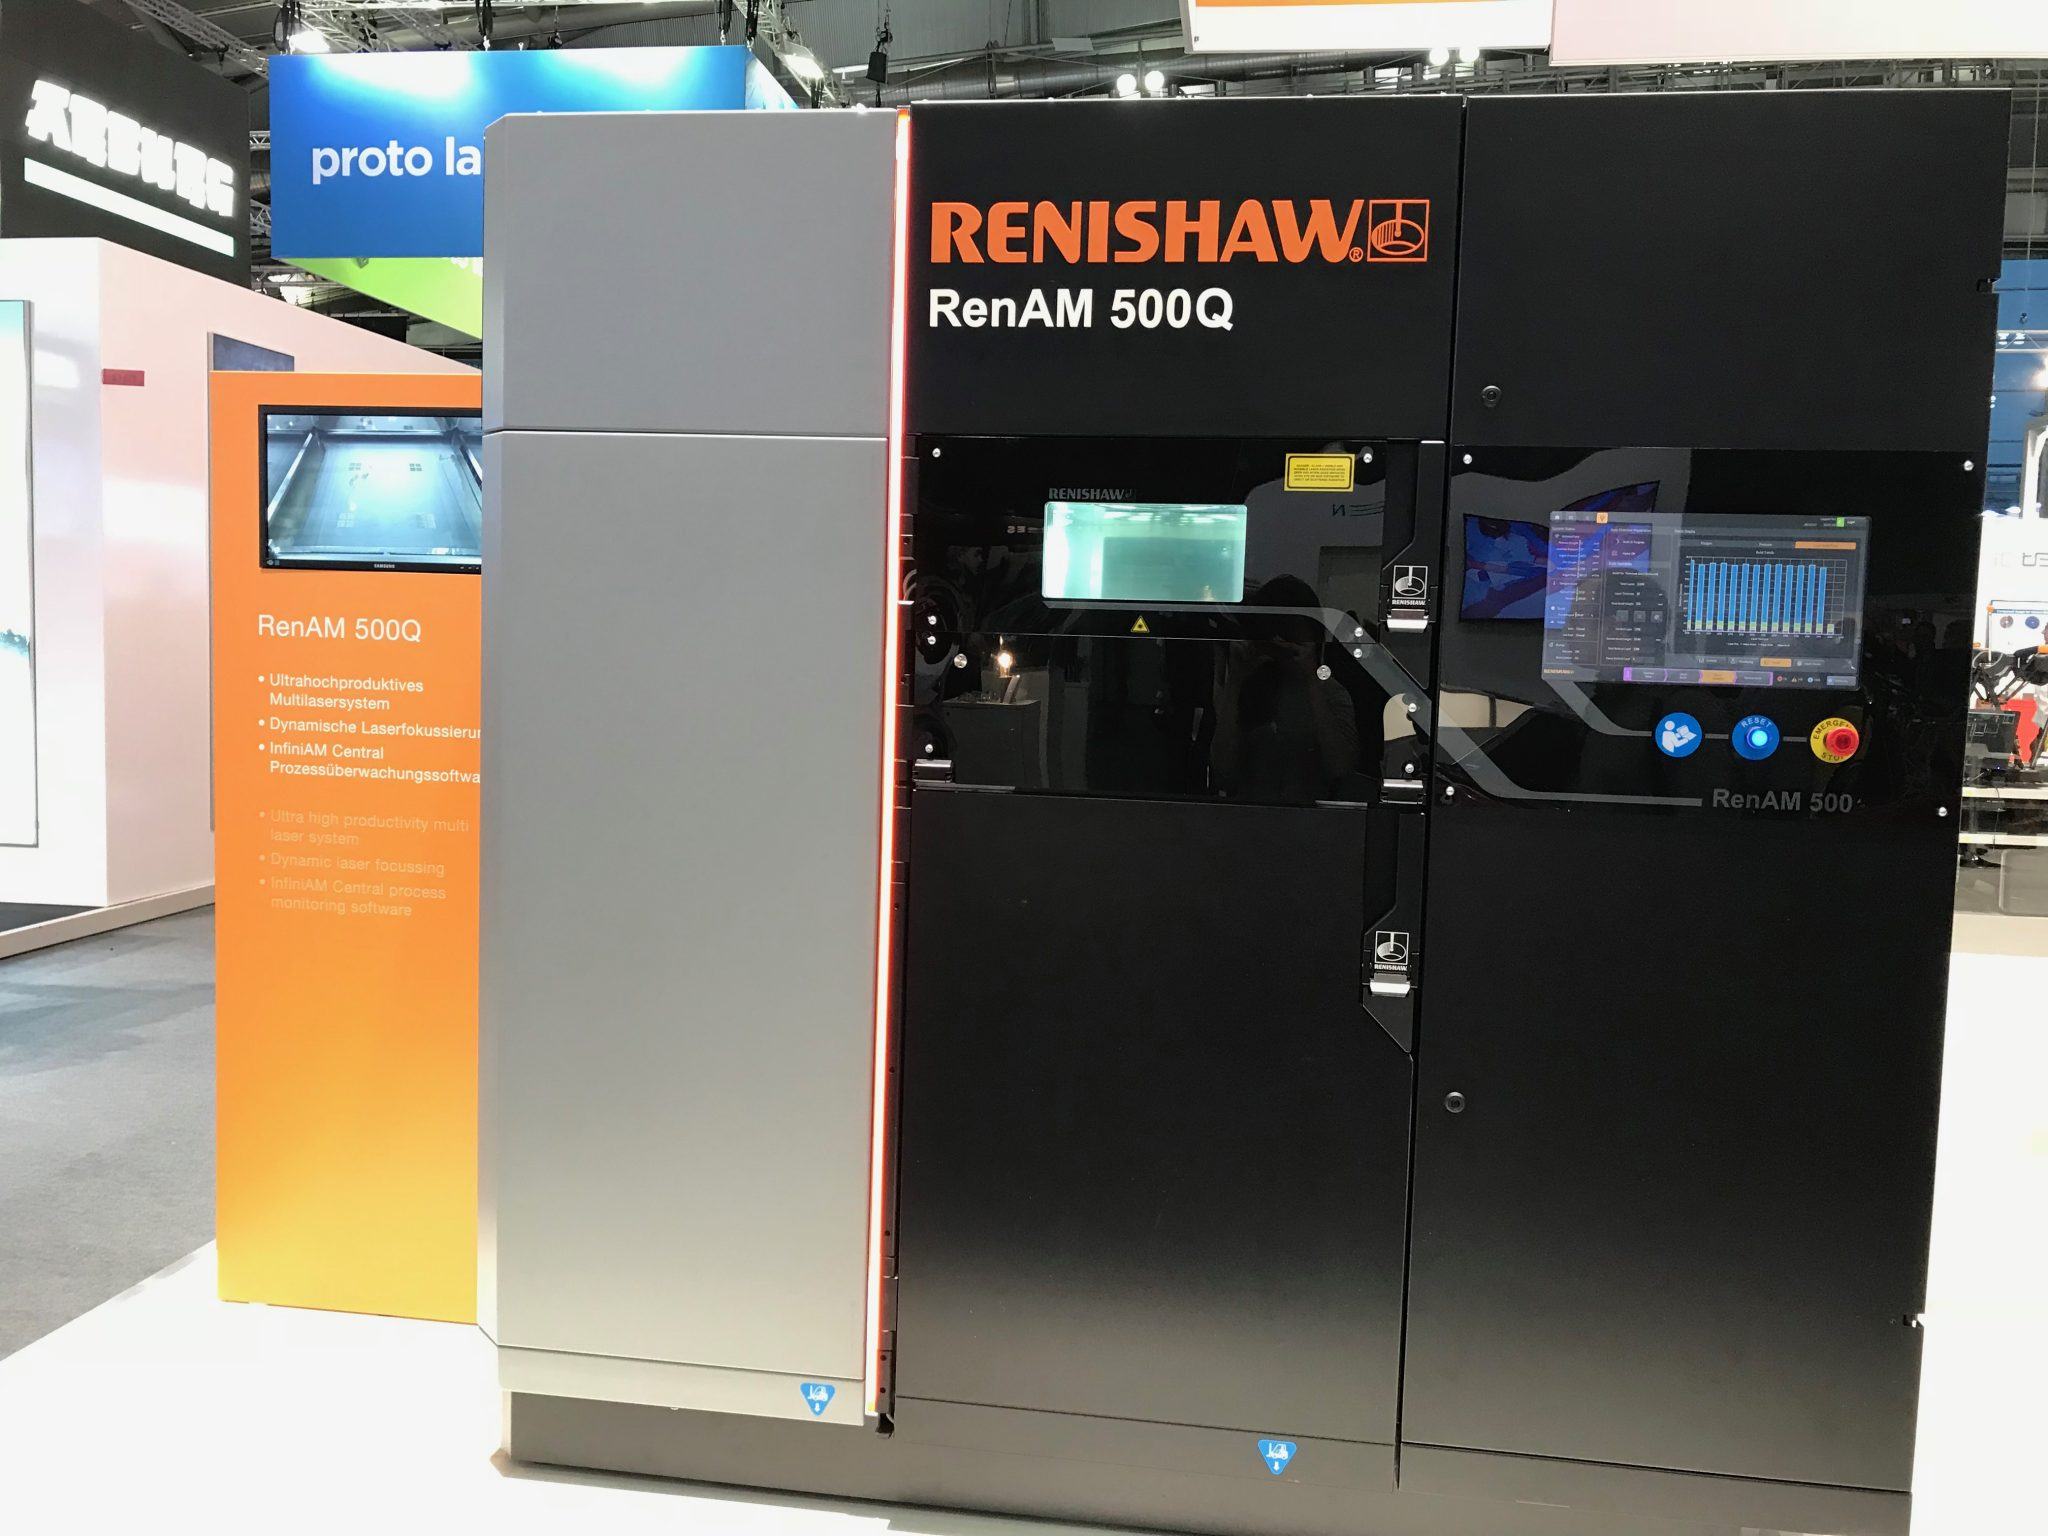 The RenAM 500Q stands on the corner of Renishaw's booth at formnext 2017. Photo by Beau Jackson for 3D Printing Industry